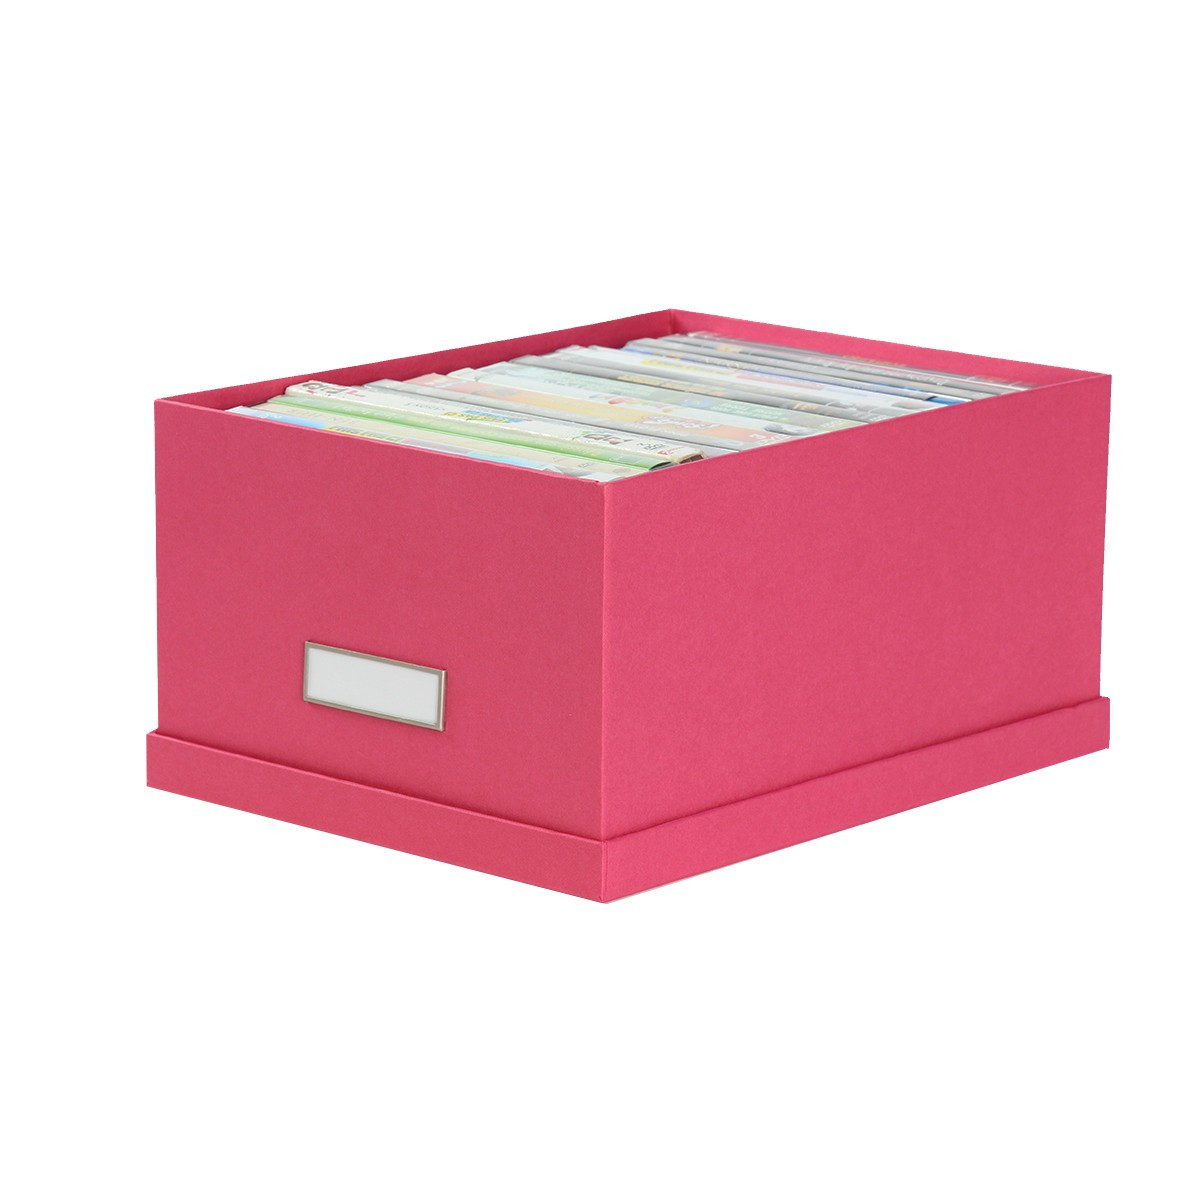 bo te de rangement dvd en carton fuchsia. Black Bedroom Furniture Sets. Home Design Ideas